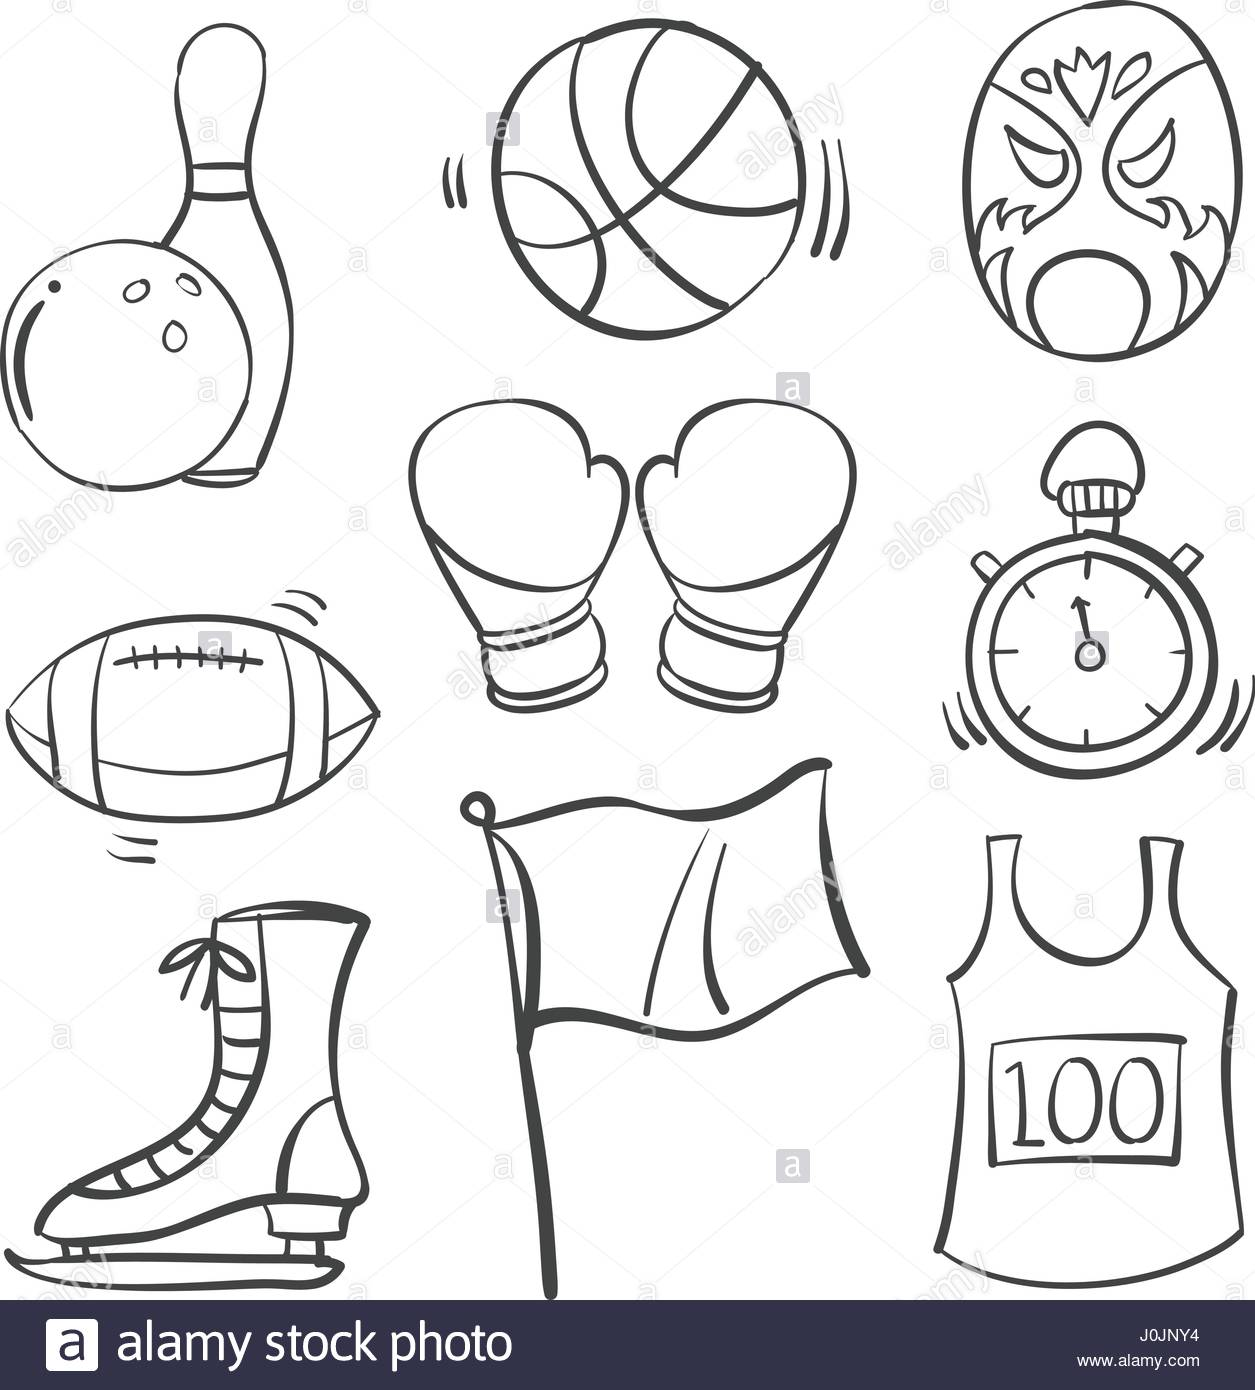 1255x1390 Collection Of Sport Equipment Hand Draw Vector Art Stock Vector